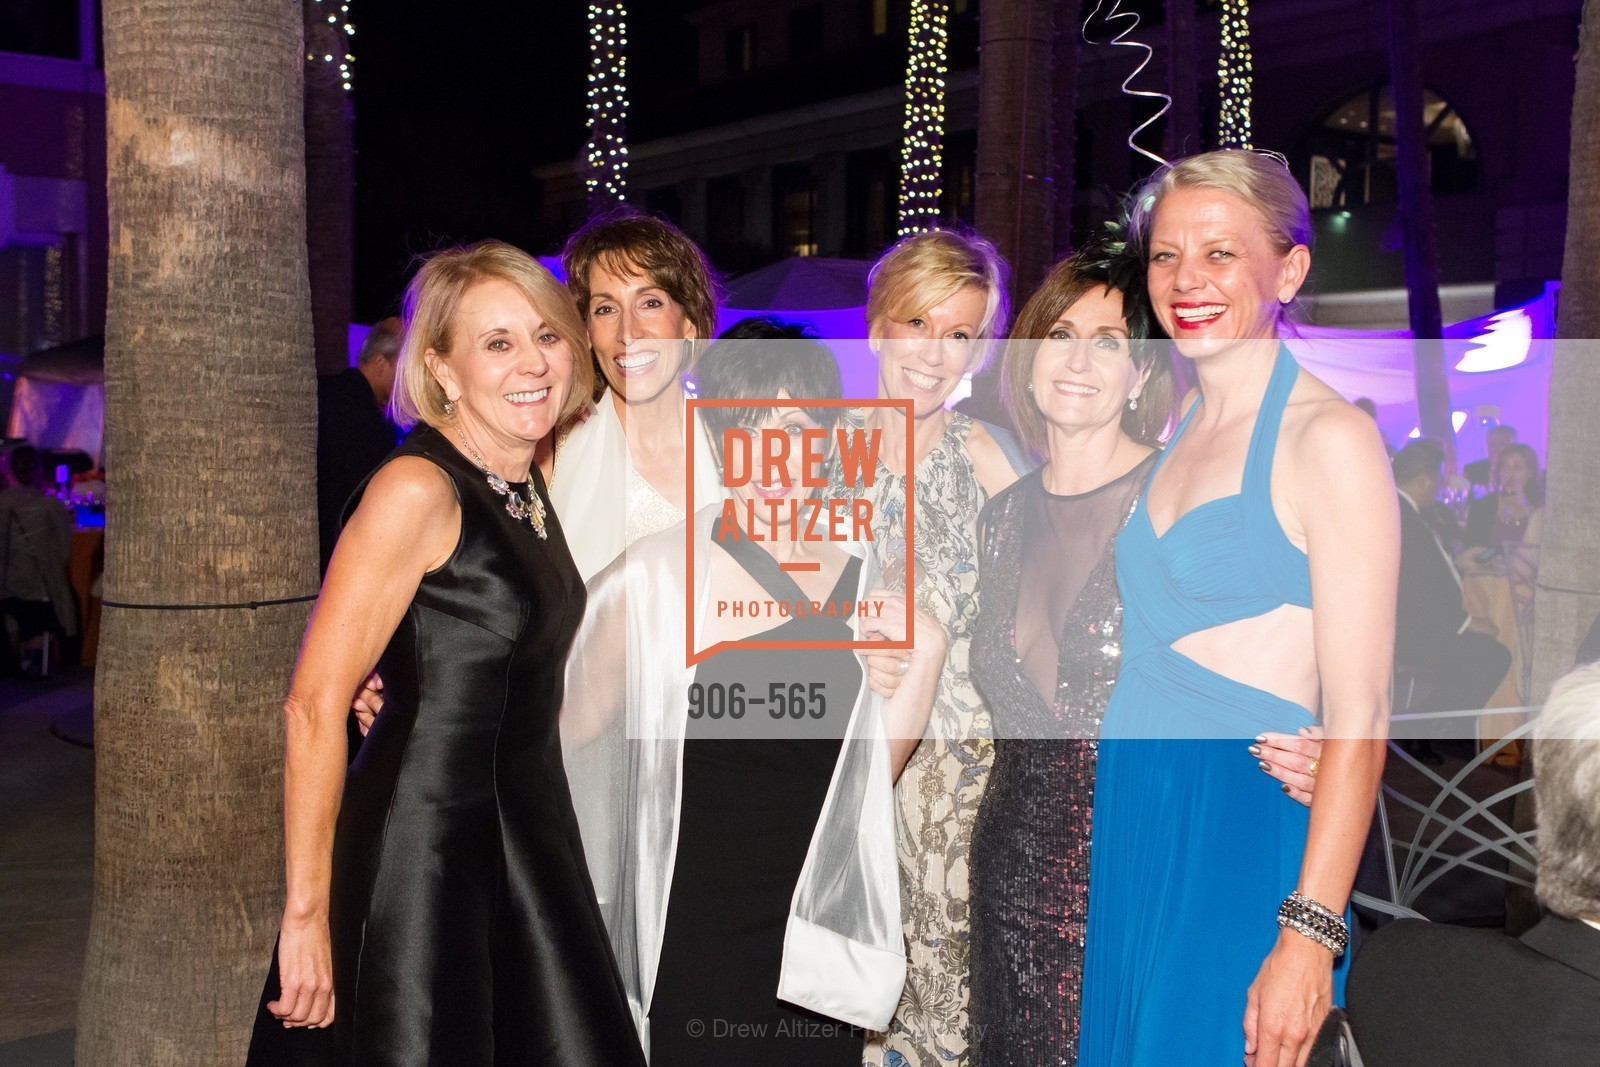 Mary Mocas, Rana Davis, Hidy Shandell, Wanda Kownacki, Aileen Silver, Catharine Clark, SAKS FIFTH AVENUE Hosts The GLAAD GALA Kick-Off Party, US, September 12th, 2014,Drew Altizer, Drew Altizer Photography, full-service agency, private events, San Francisco photographer, photographer california